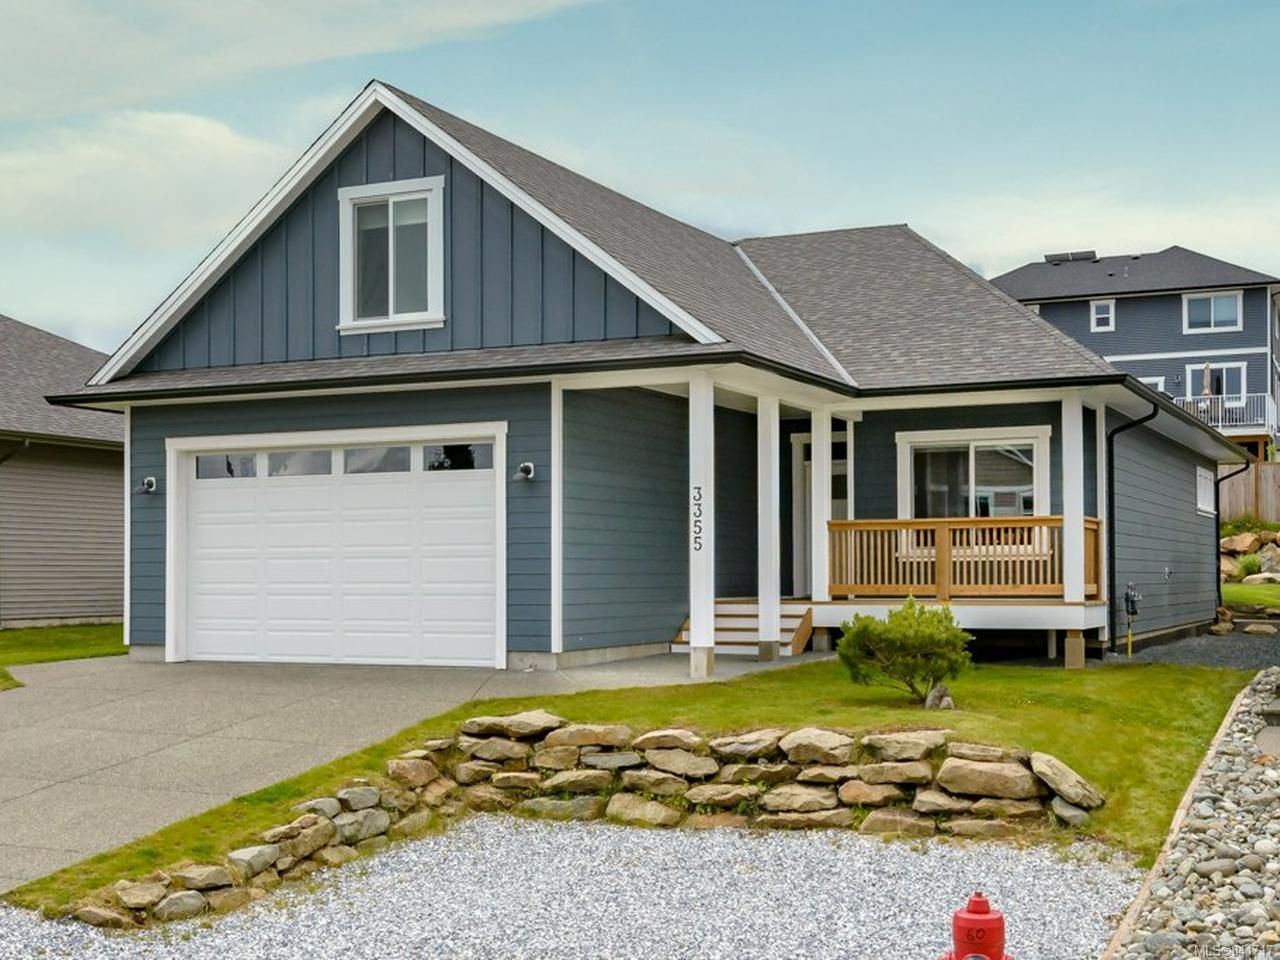 Main Photo: 3355 Solport St in CUMBERLAND: CV Cumberland House for sale (Comox Valley)  : MLS®# 841717